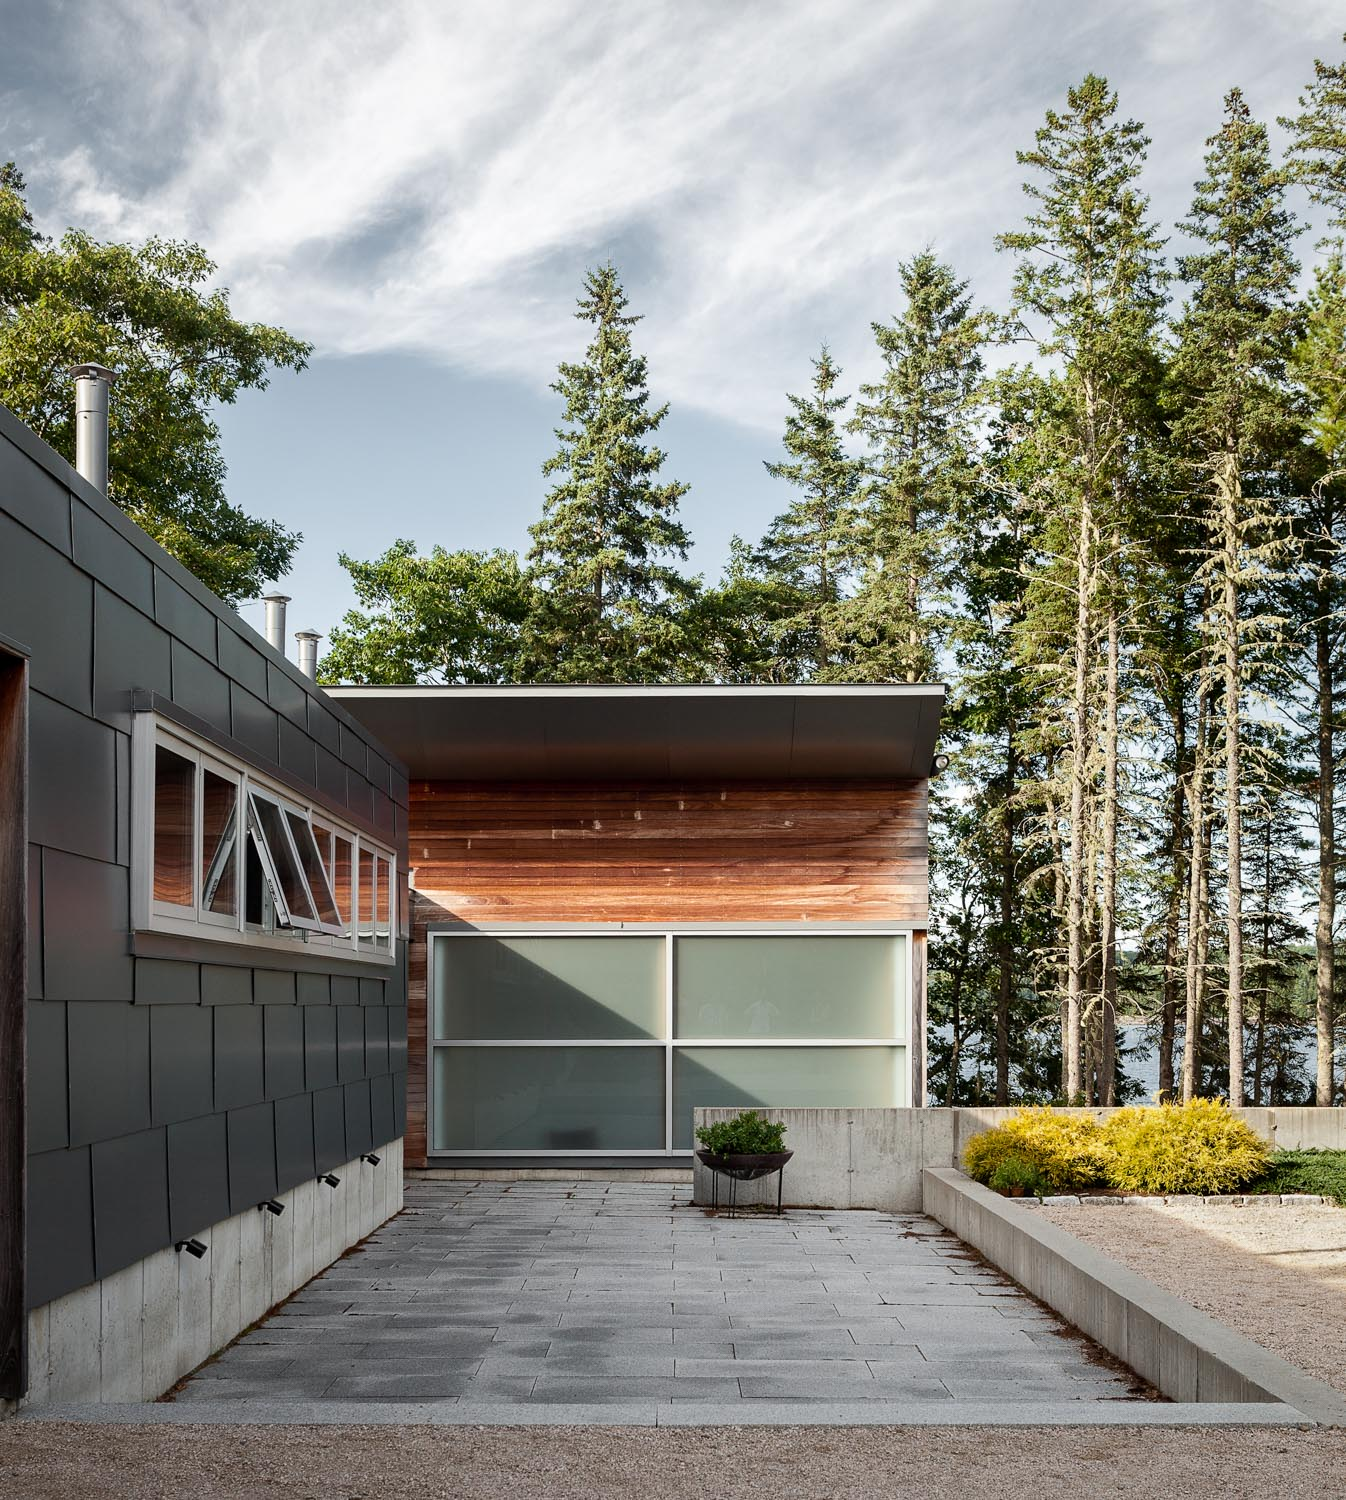 Maine Modern with Pine Trees